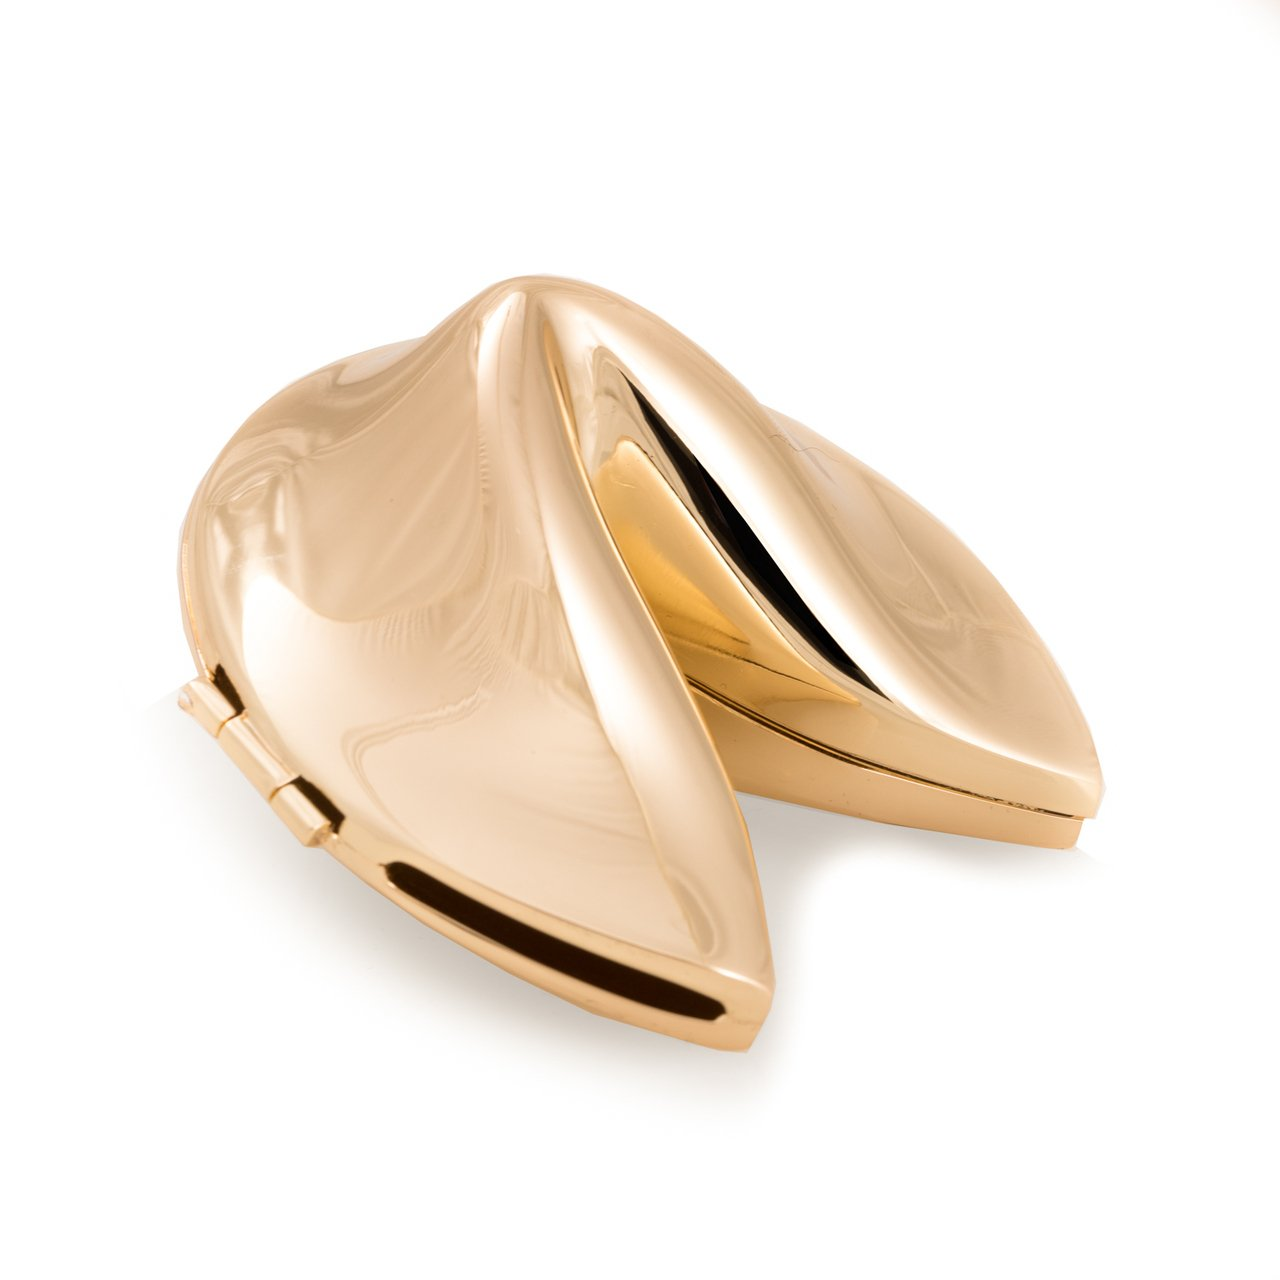 Fortune Cookie Box, Gold Plated tarnish proof, D504G Bey Berk